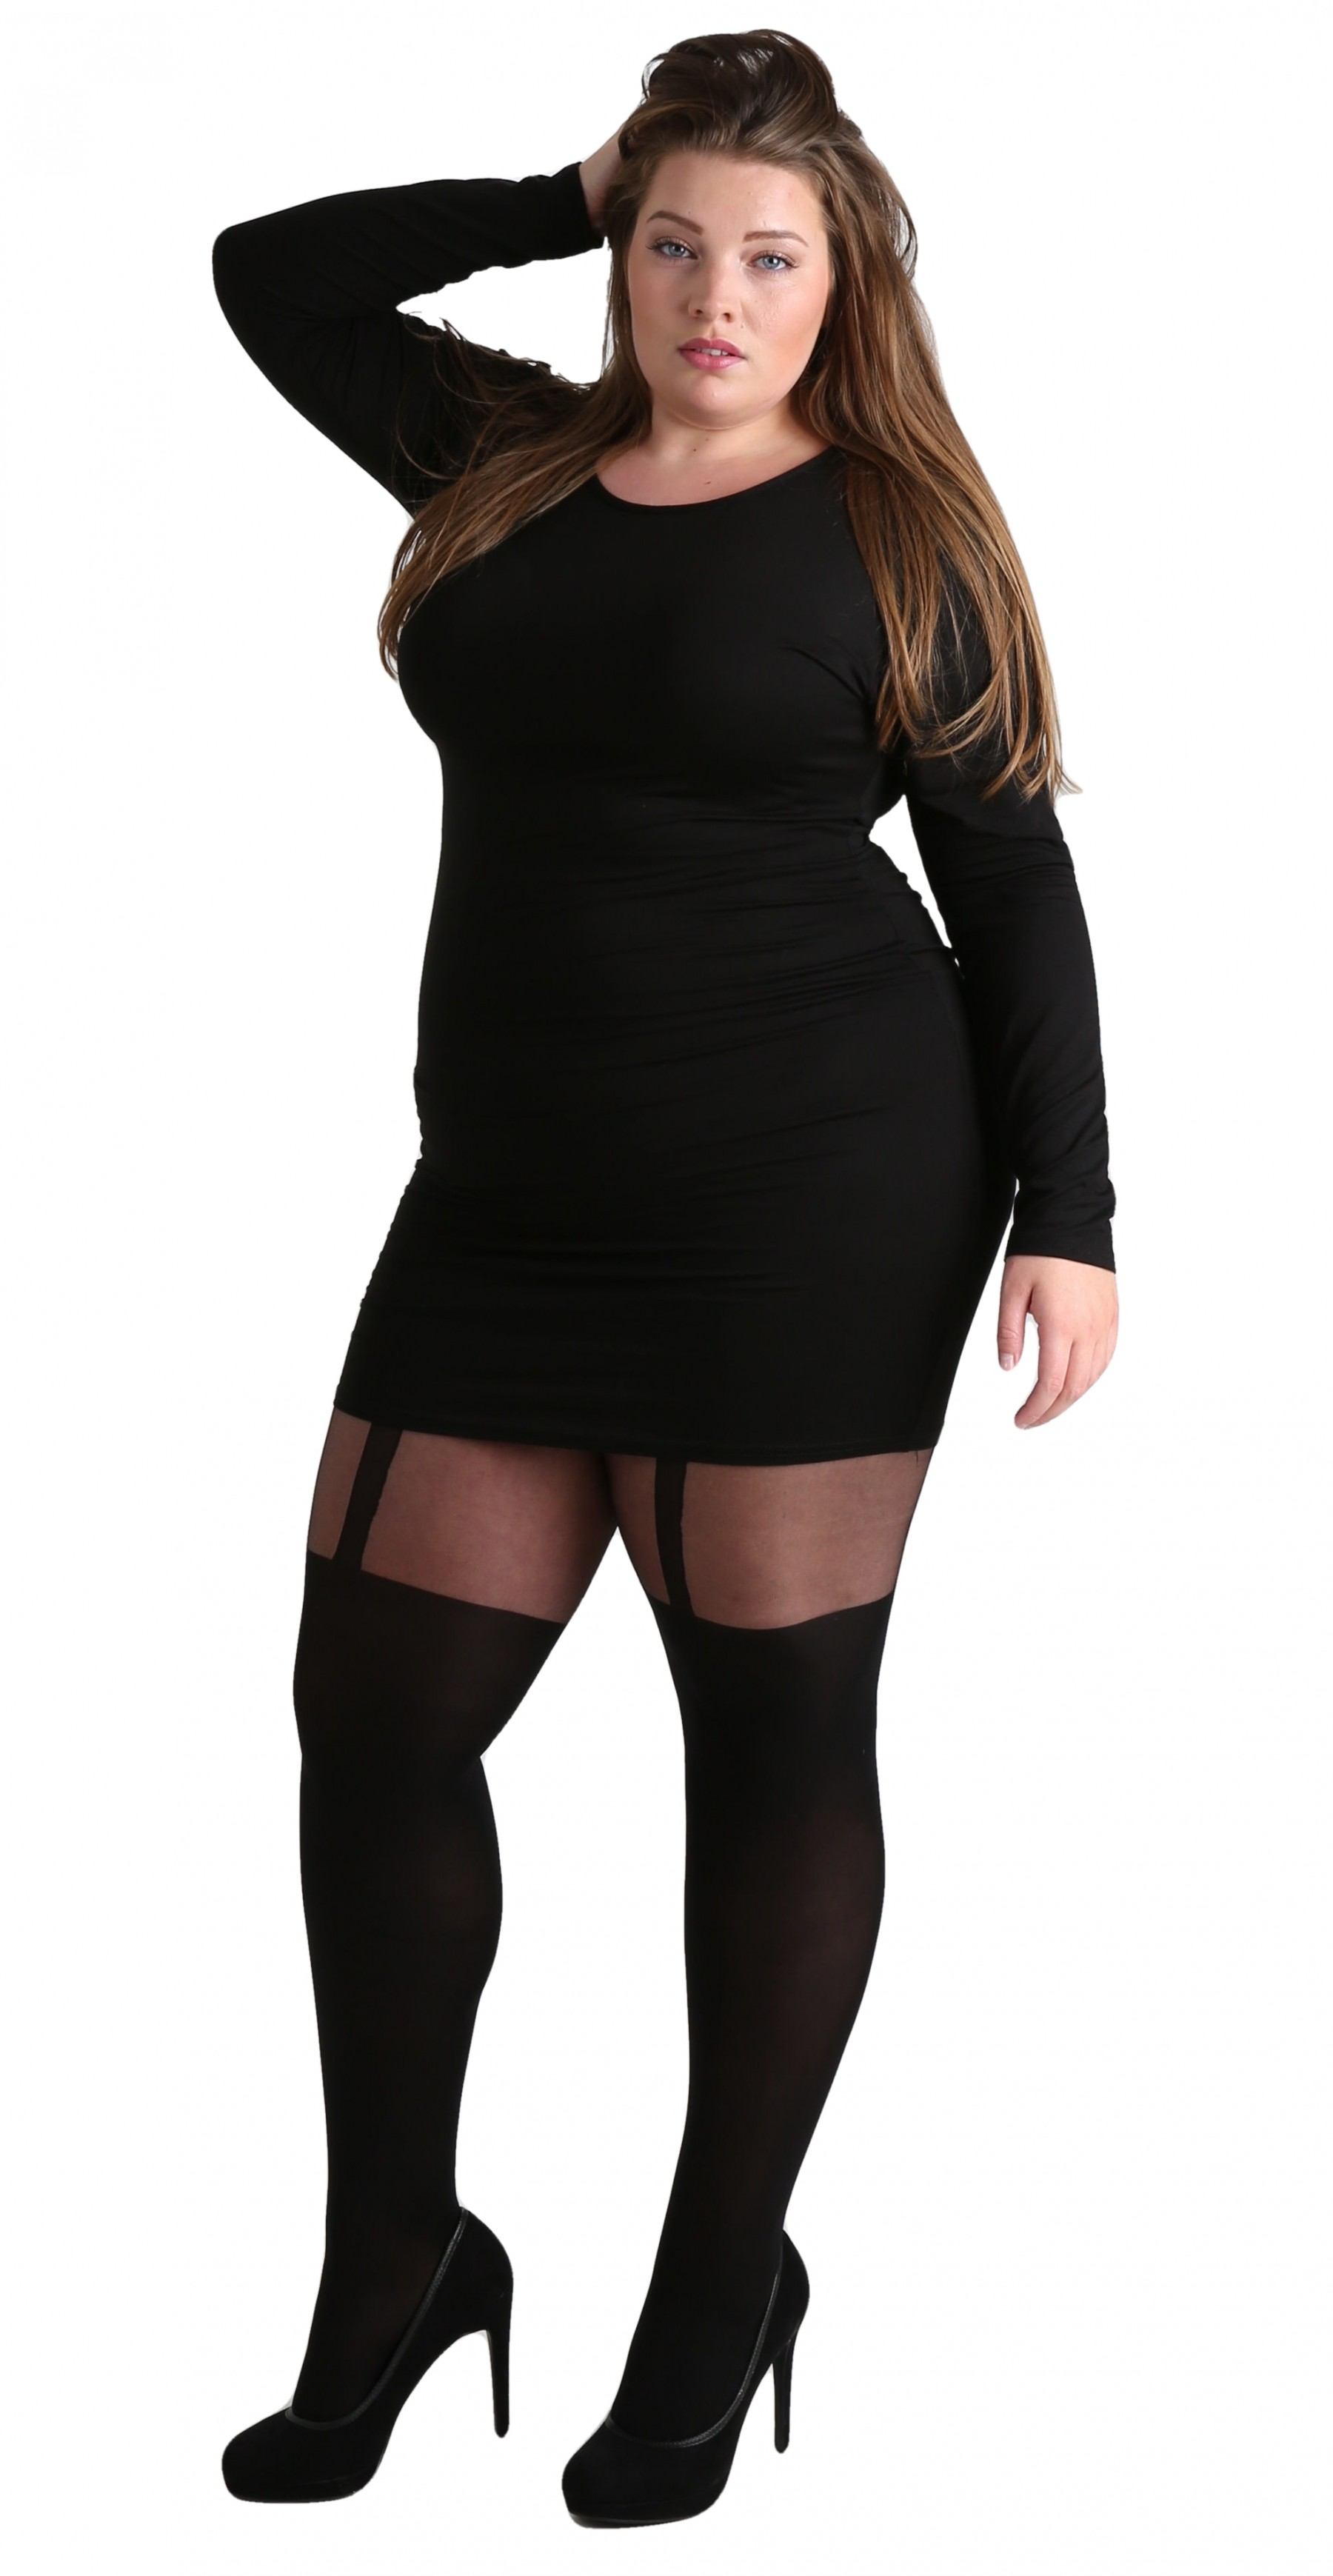 Wholesale Plus Size Plain Stripe Suspender Tights (Black), Pamela Mann, Supplying The Trade For ...